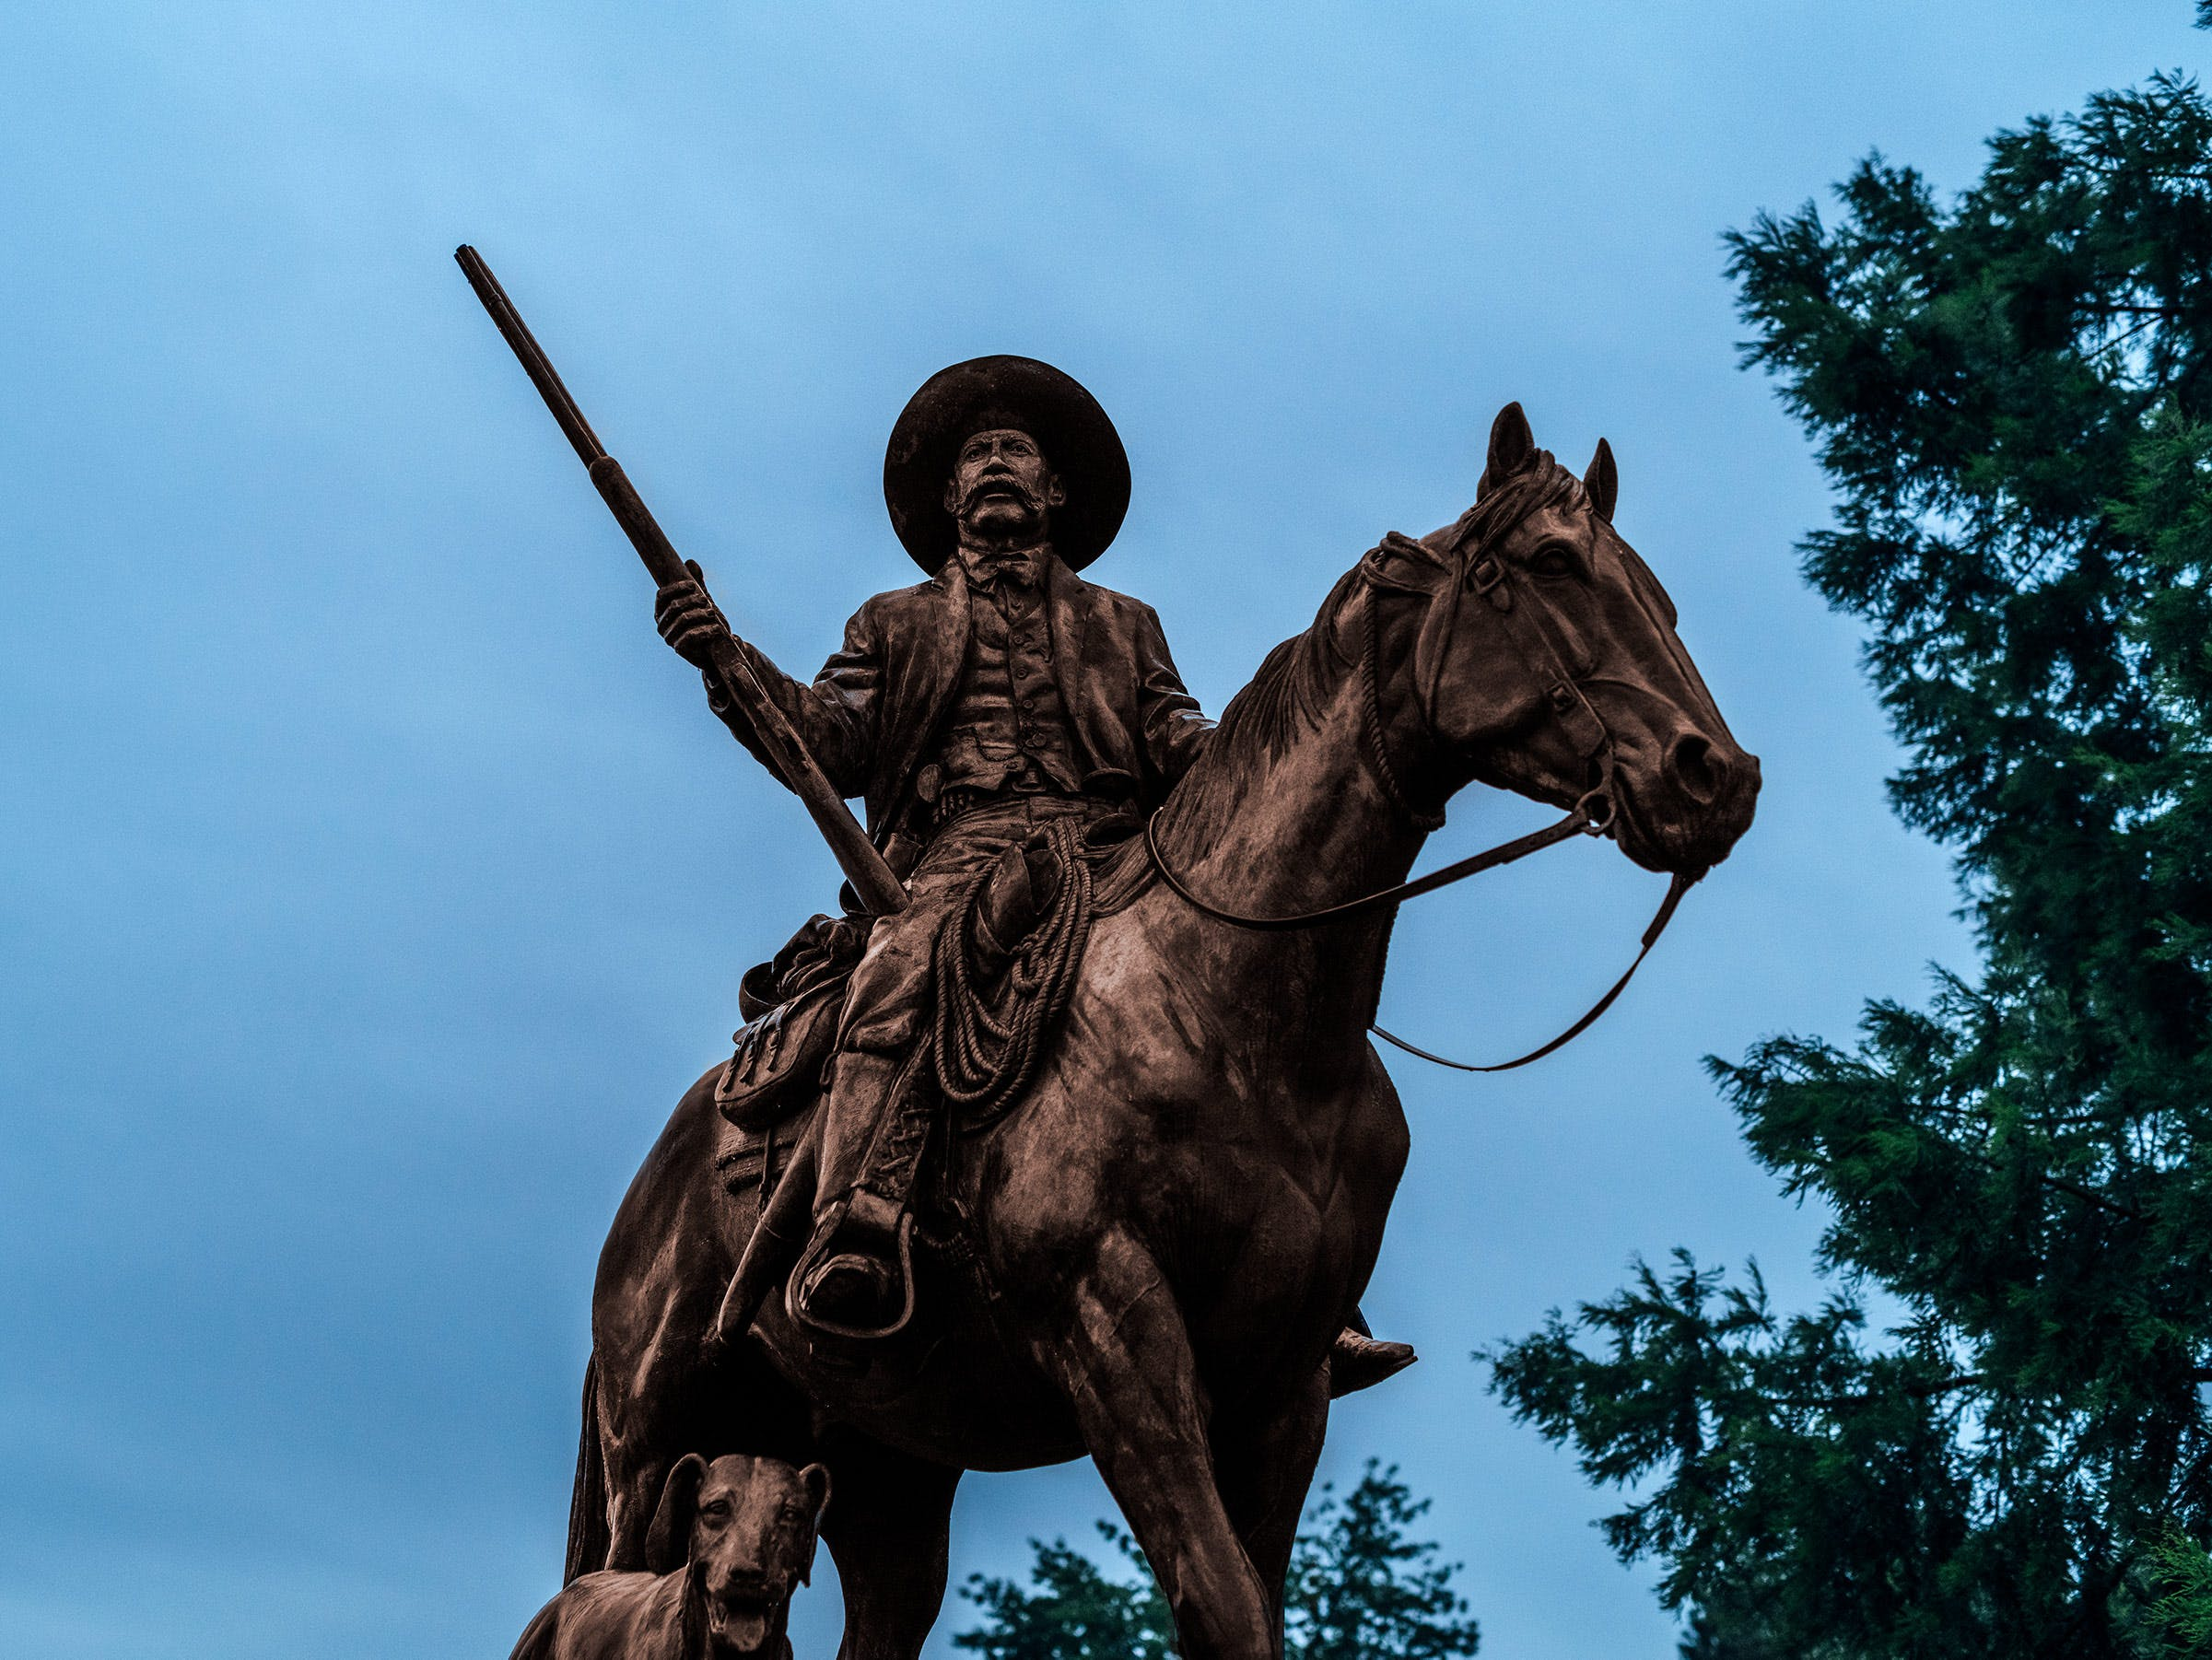 Bass Reeves statue